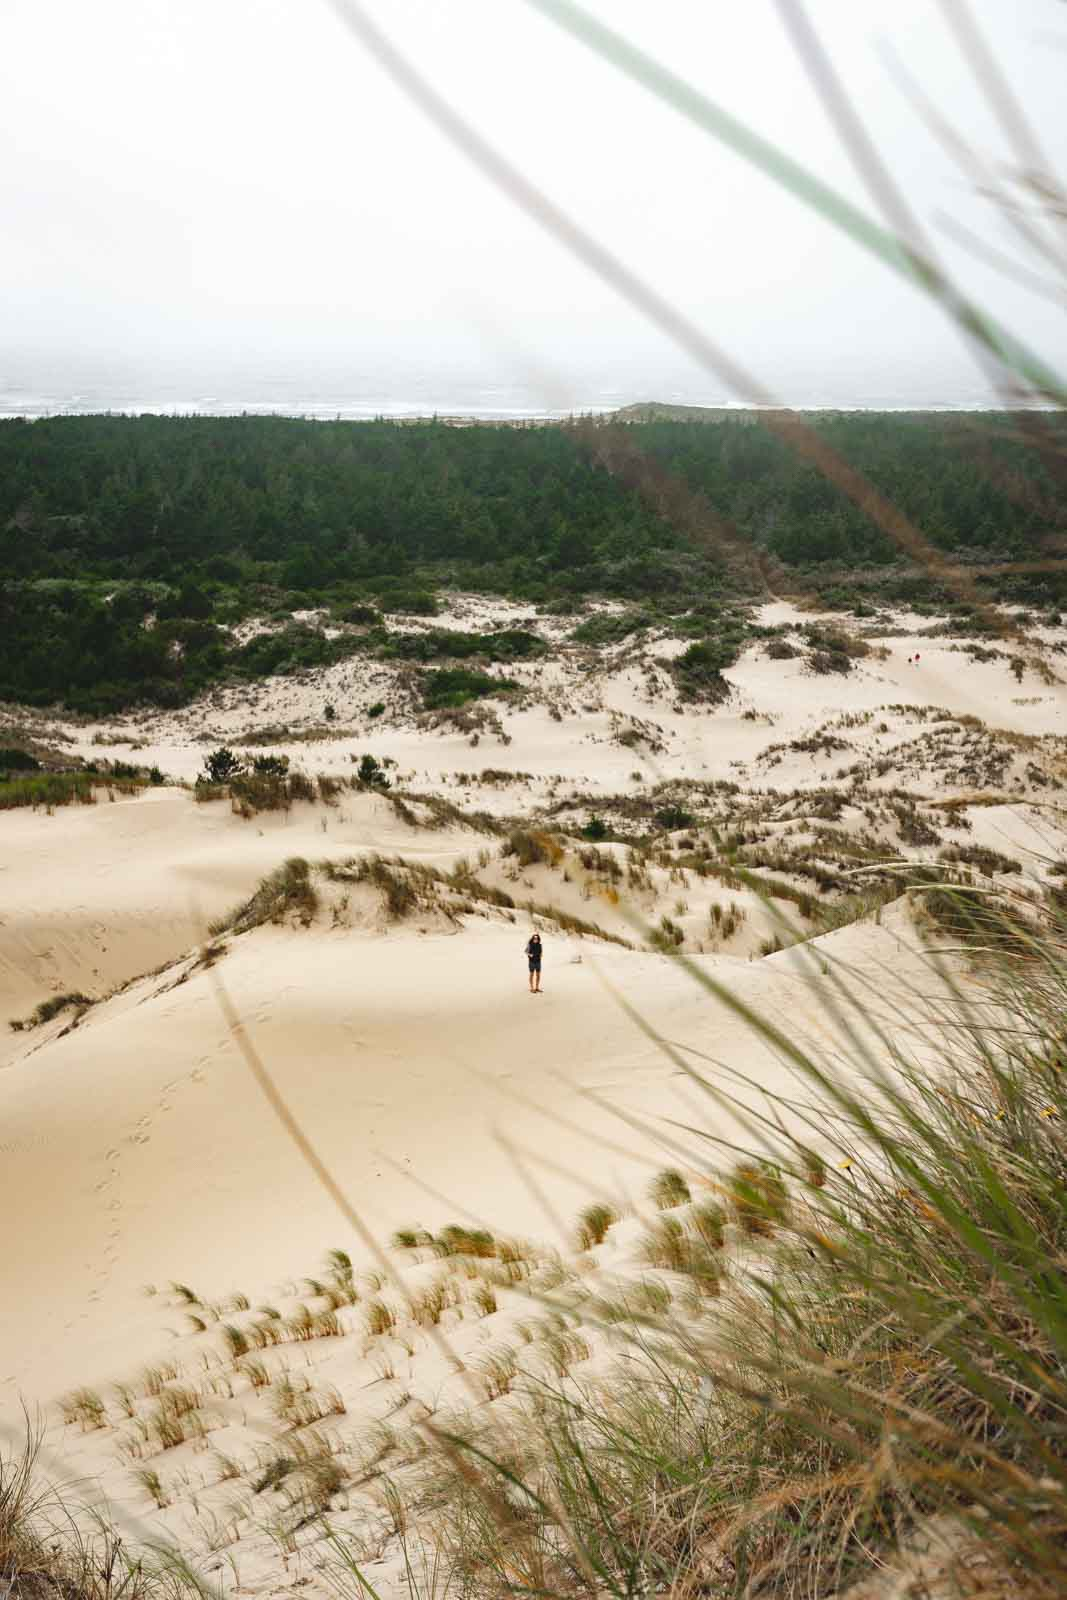 The Oregon Dunes NRA trail is a fun hike when visiting the Oregon sand dunes.